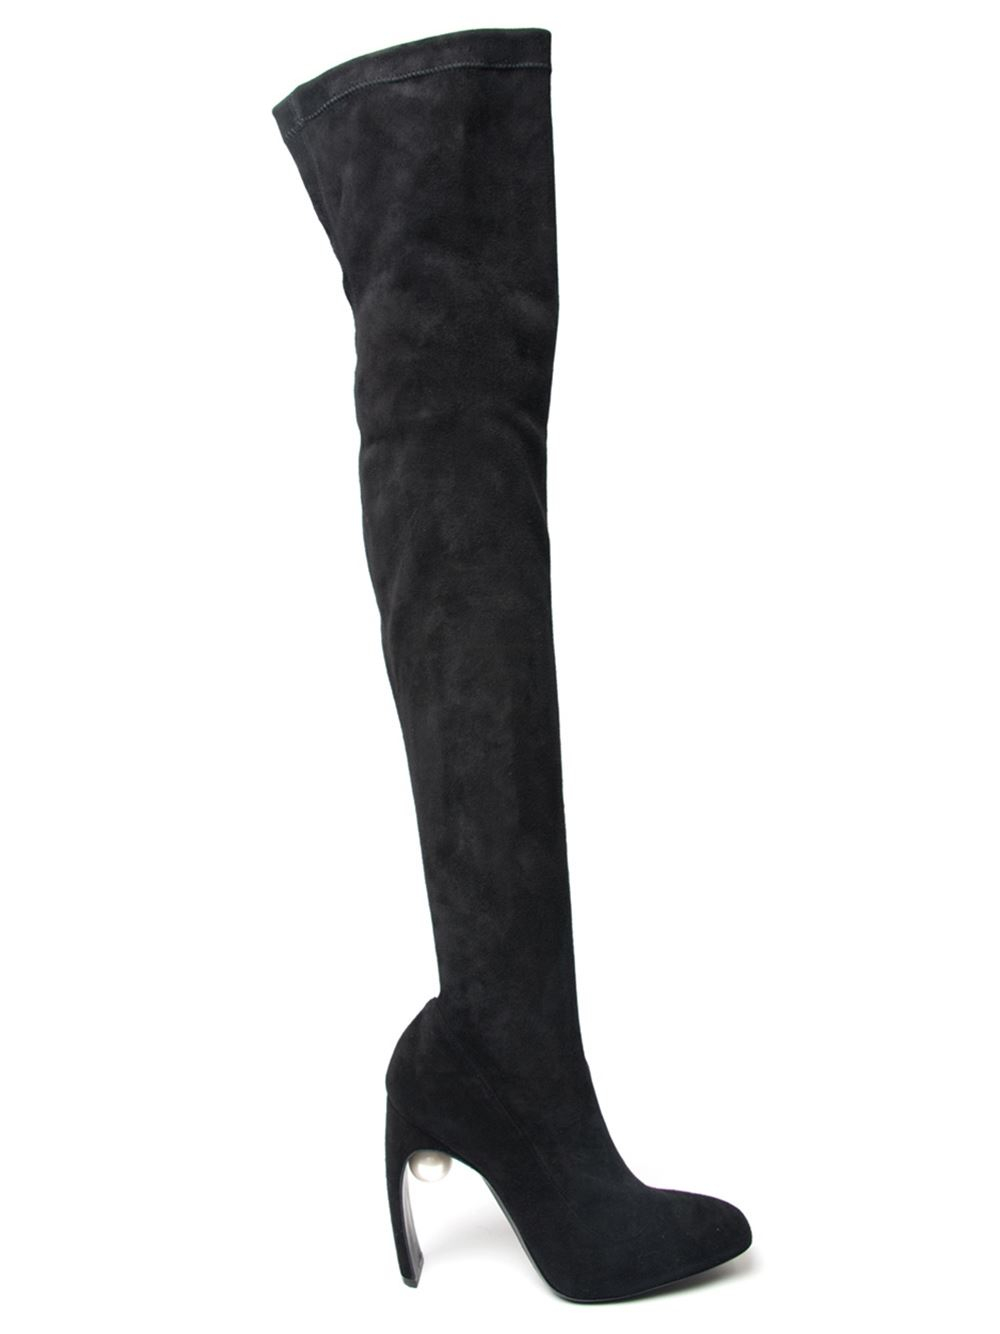 MM6 Maison Martin Margiela Black Casati Pearl Over-the-Knee Boots Tlm5PtDTTt